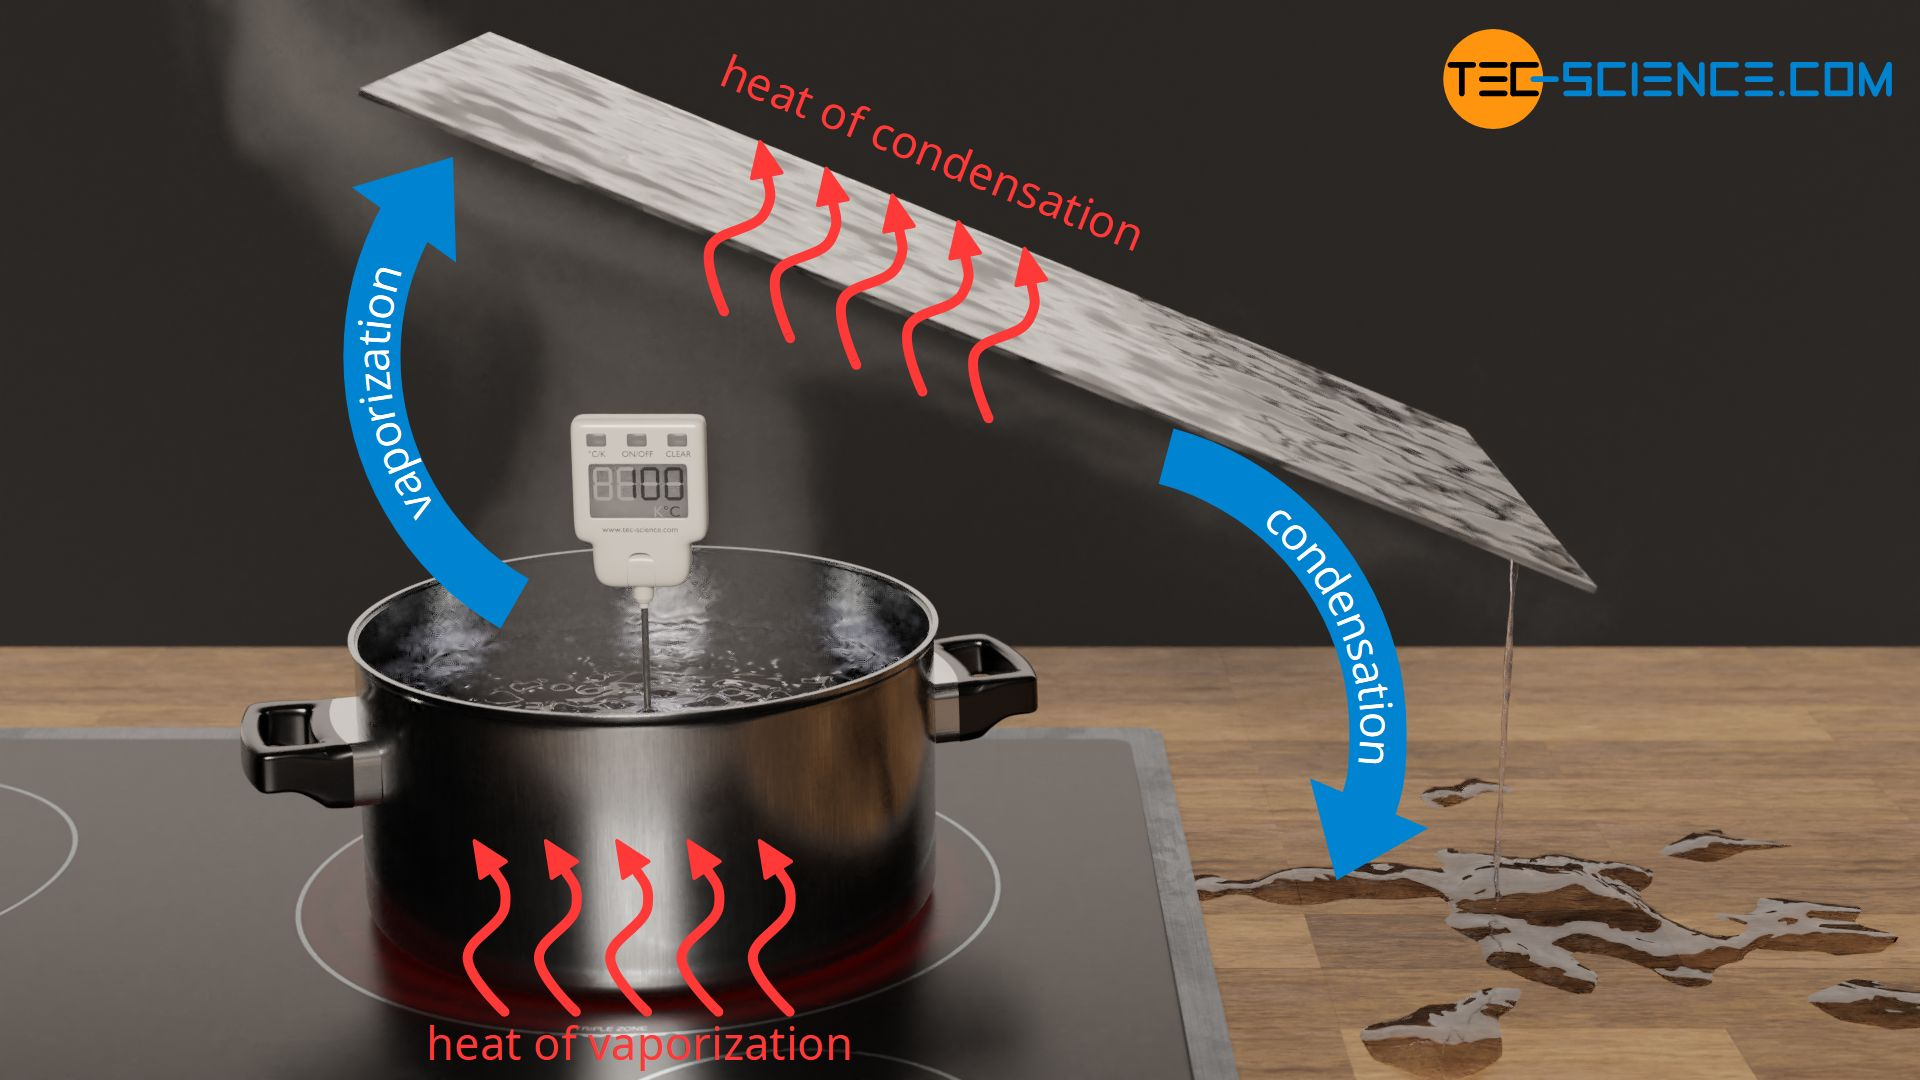 Supply of heat of vaporization during vaporization and dissipation of heat of condensation during condensation